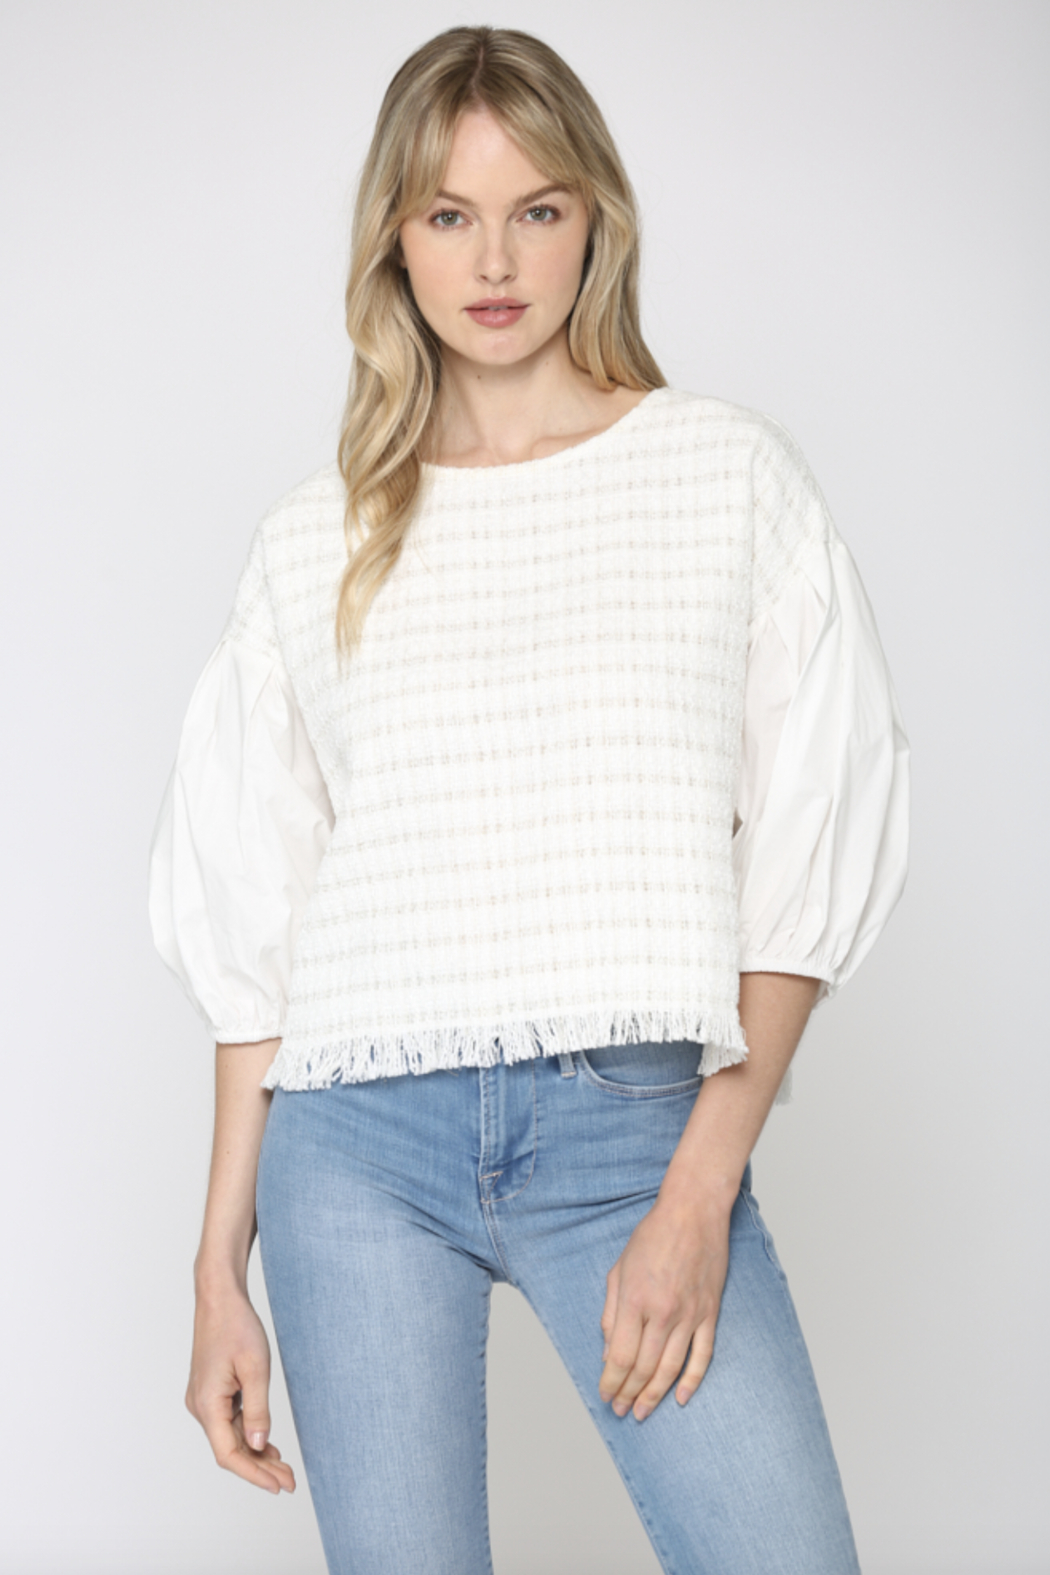 FATE by LFD Contrast Balloon Sleeve Tweed Blouse - Main Image